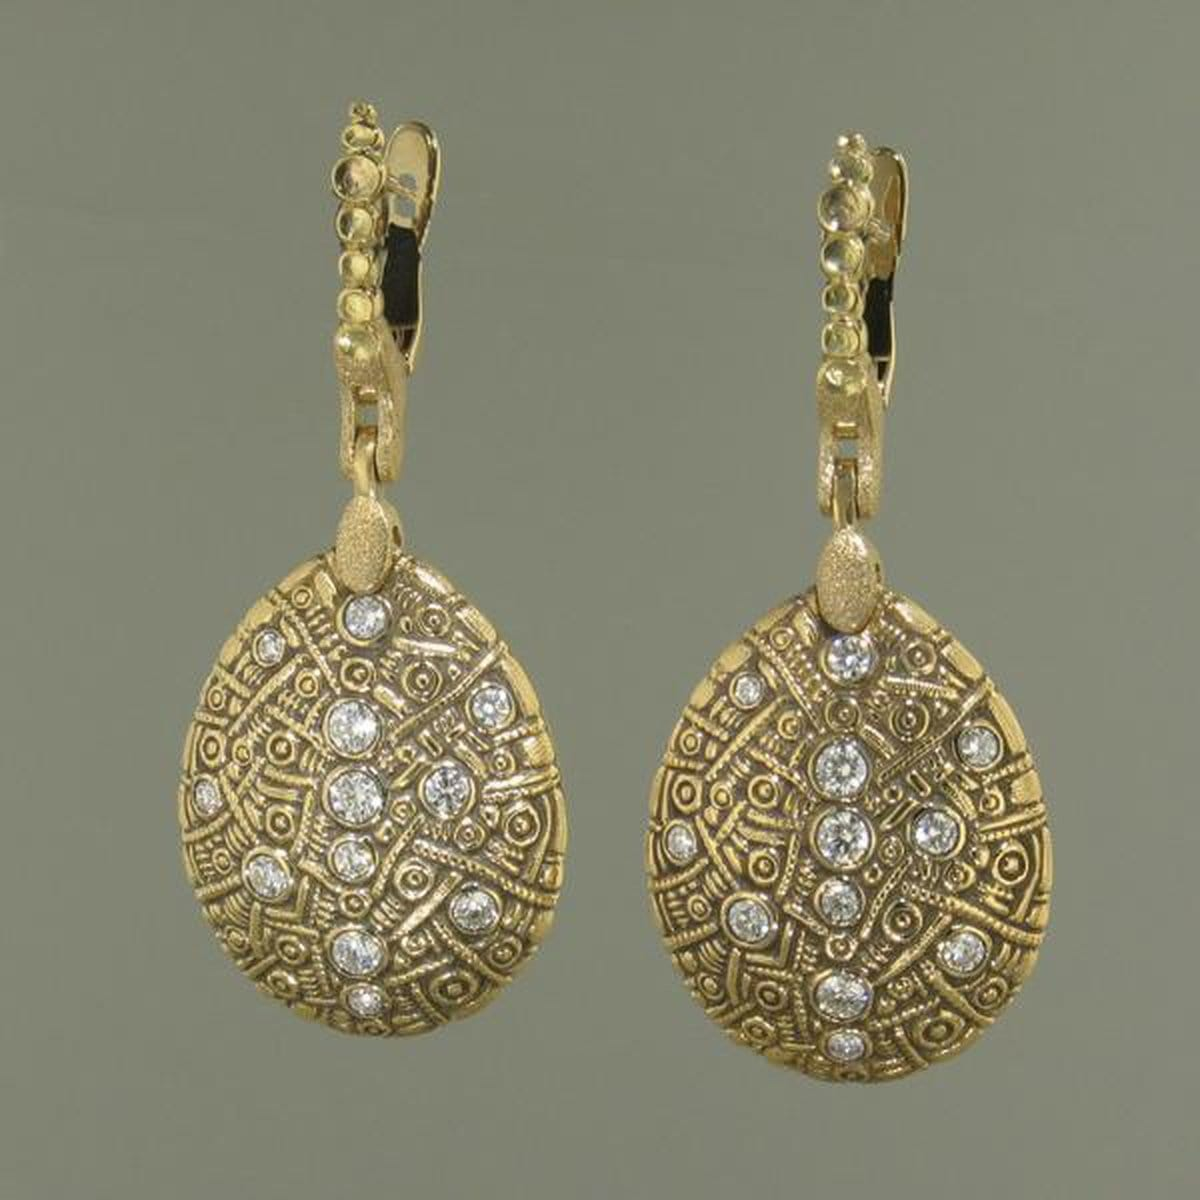 18K Tear Drop Diamond Earrings - E-186D-Alex Sepkus-Renee Taylor Gallery